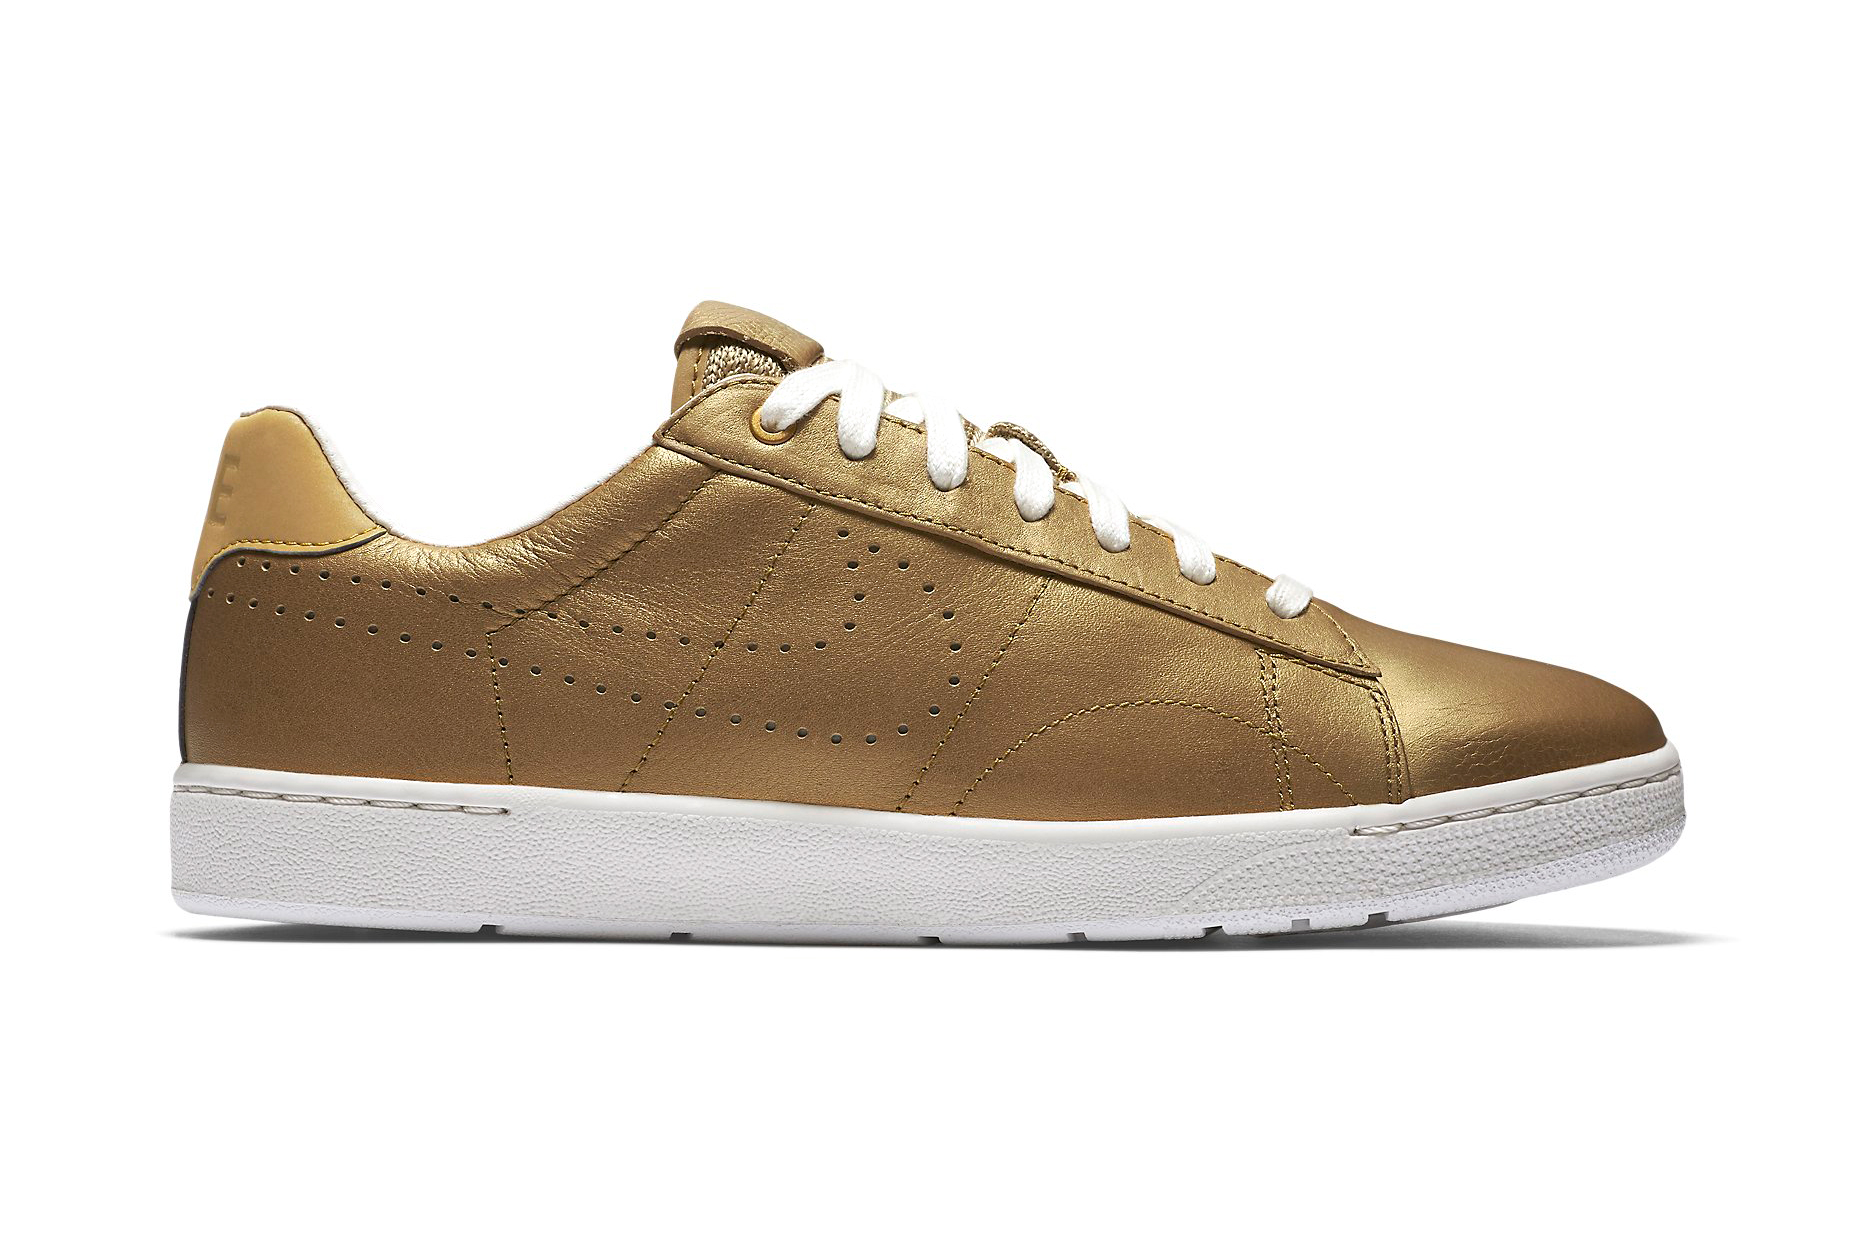 Nike Coats the Tennis Classic Ultra in Gold for Wimbledon